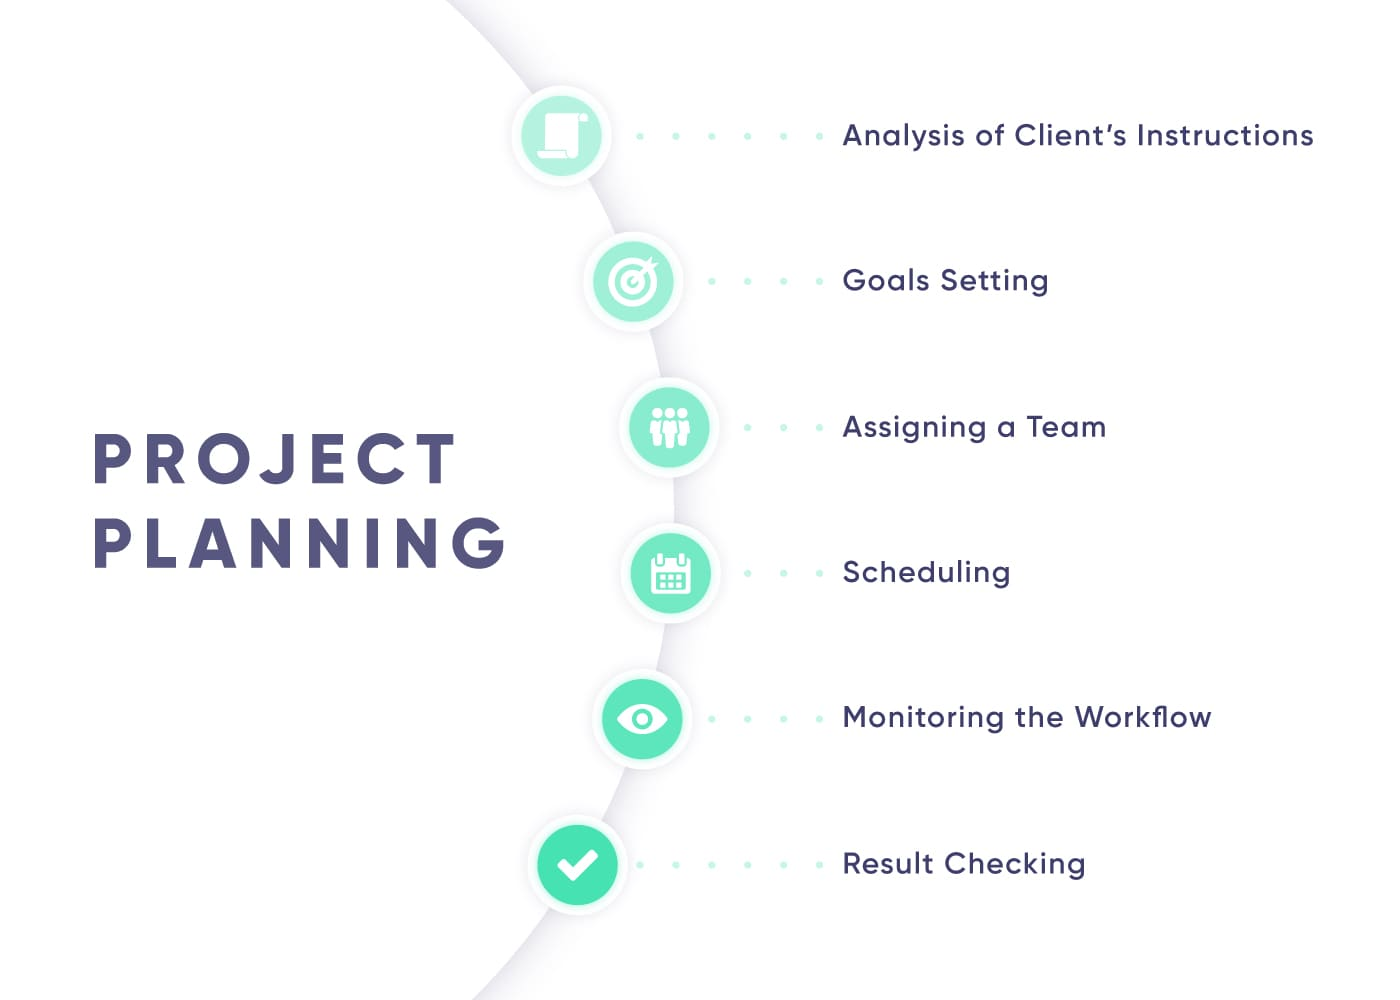 6 reasonswhy project planning is important